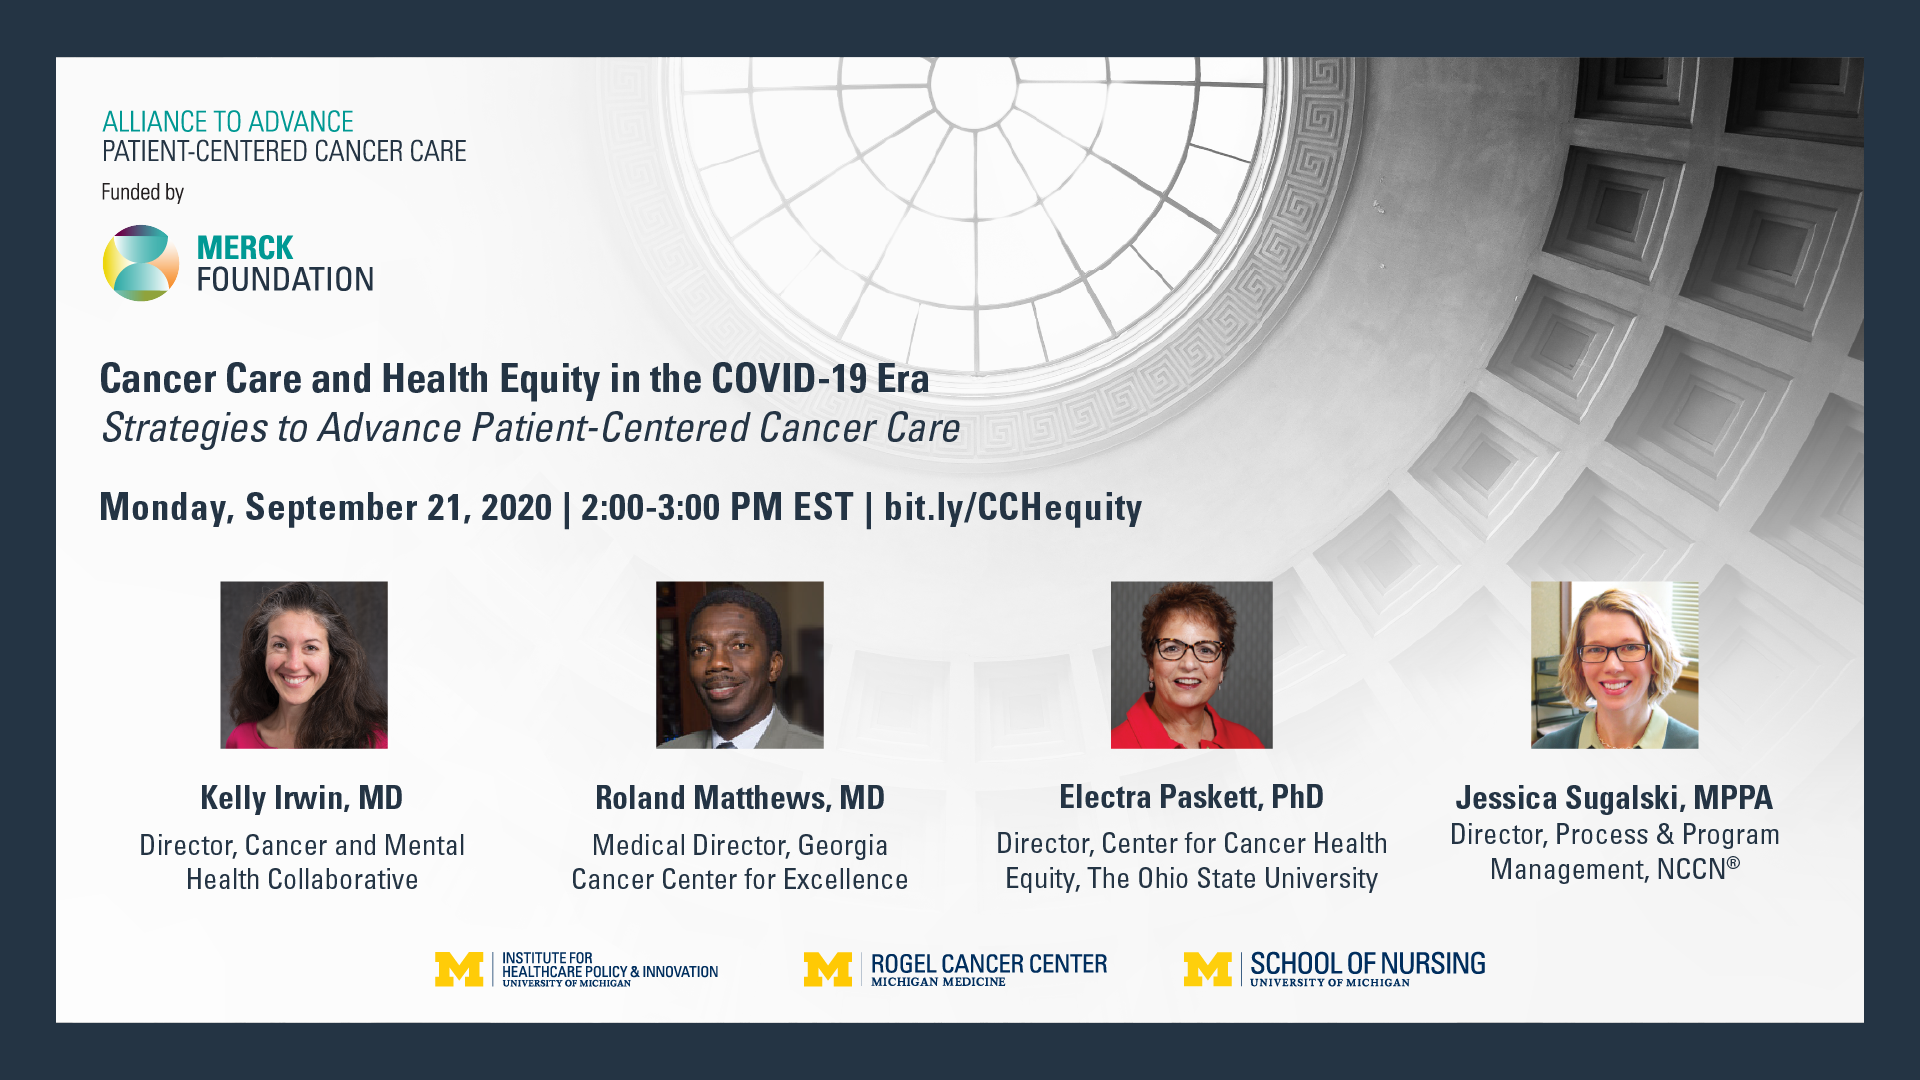 Cancer Care and Health Equity in the COVID-19 Era